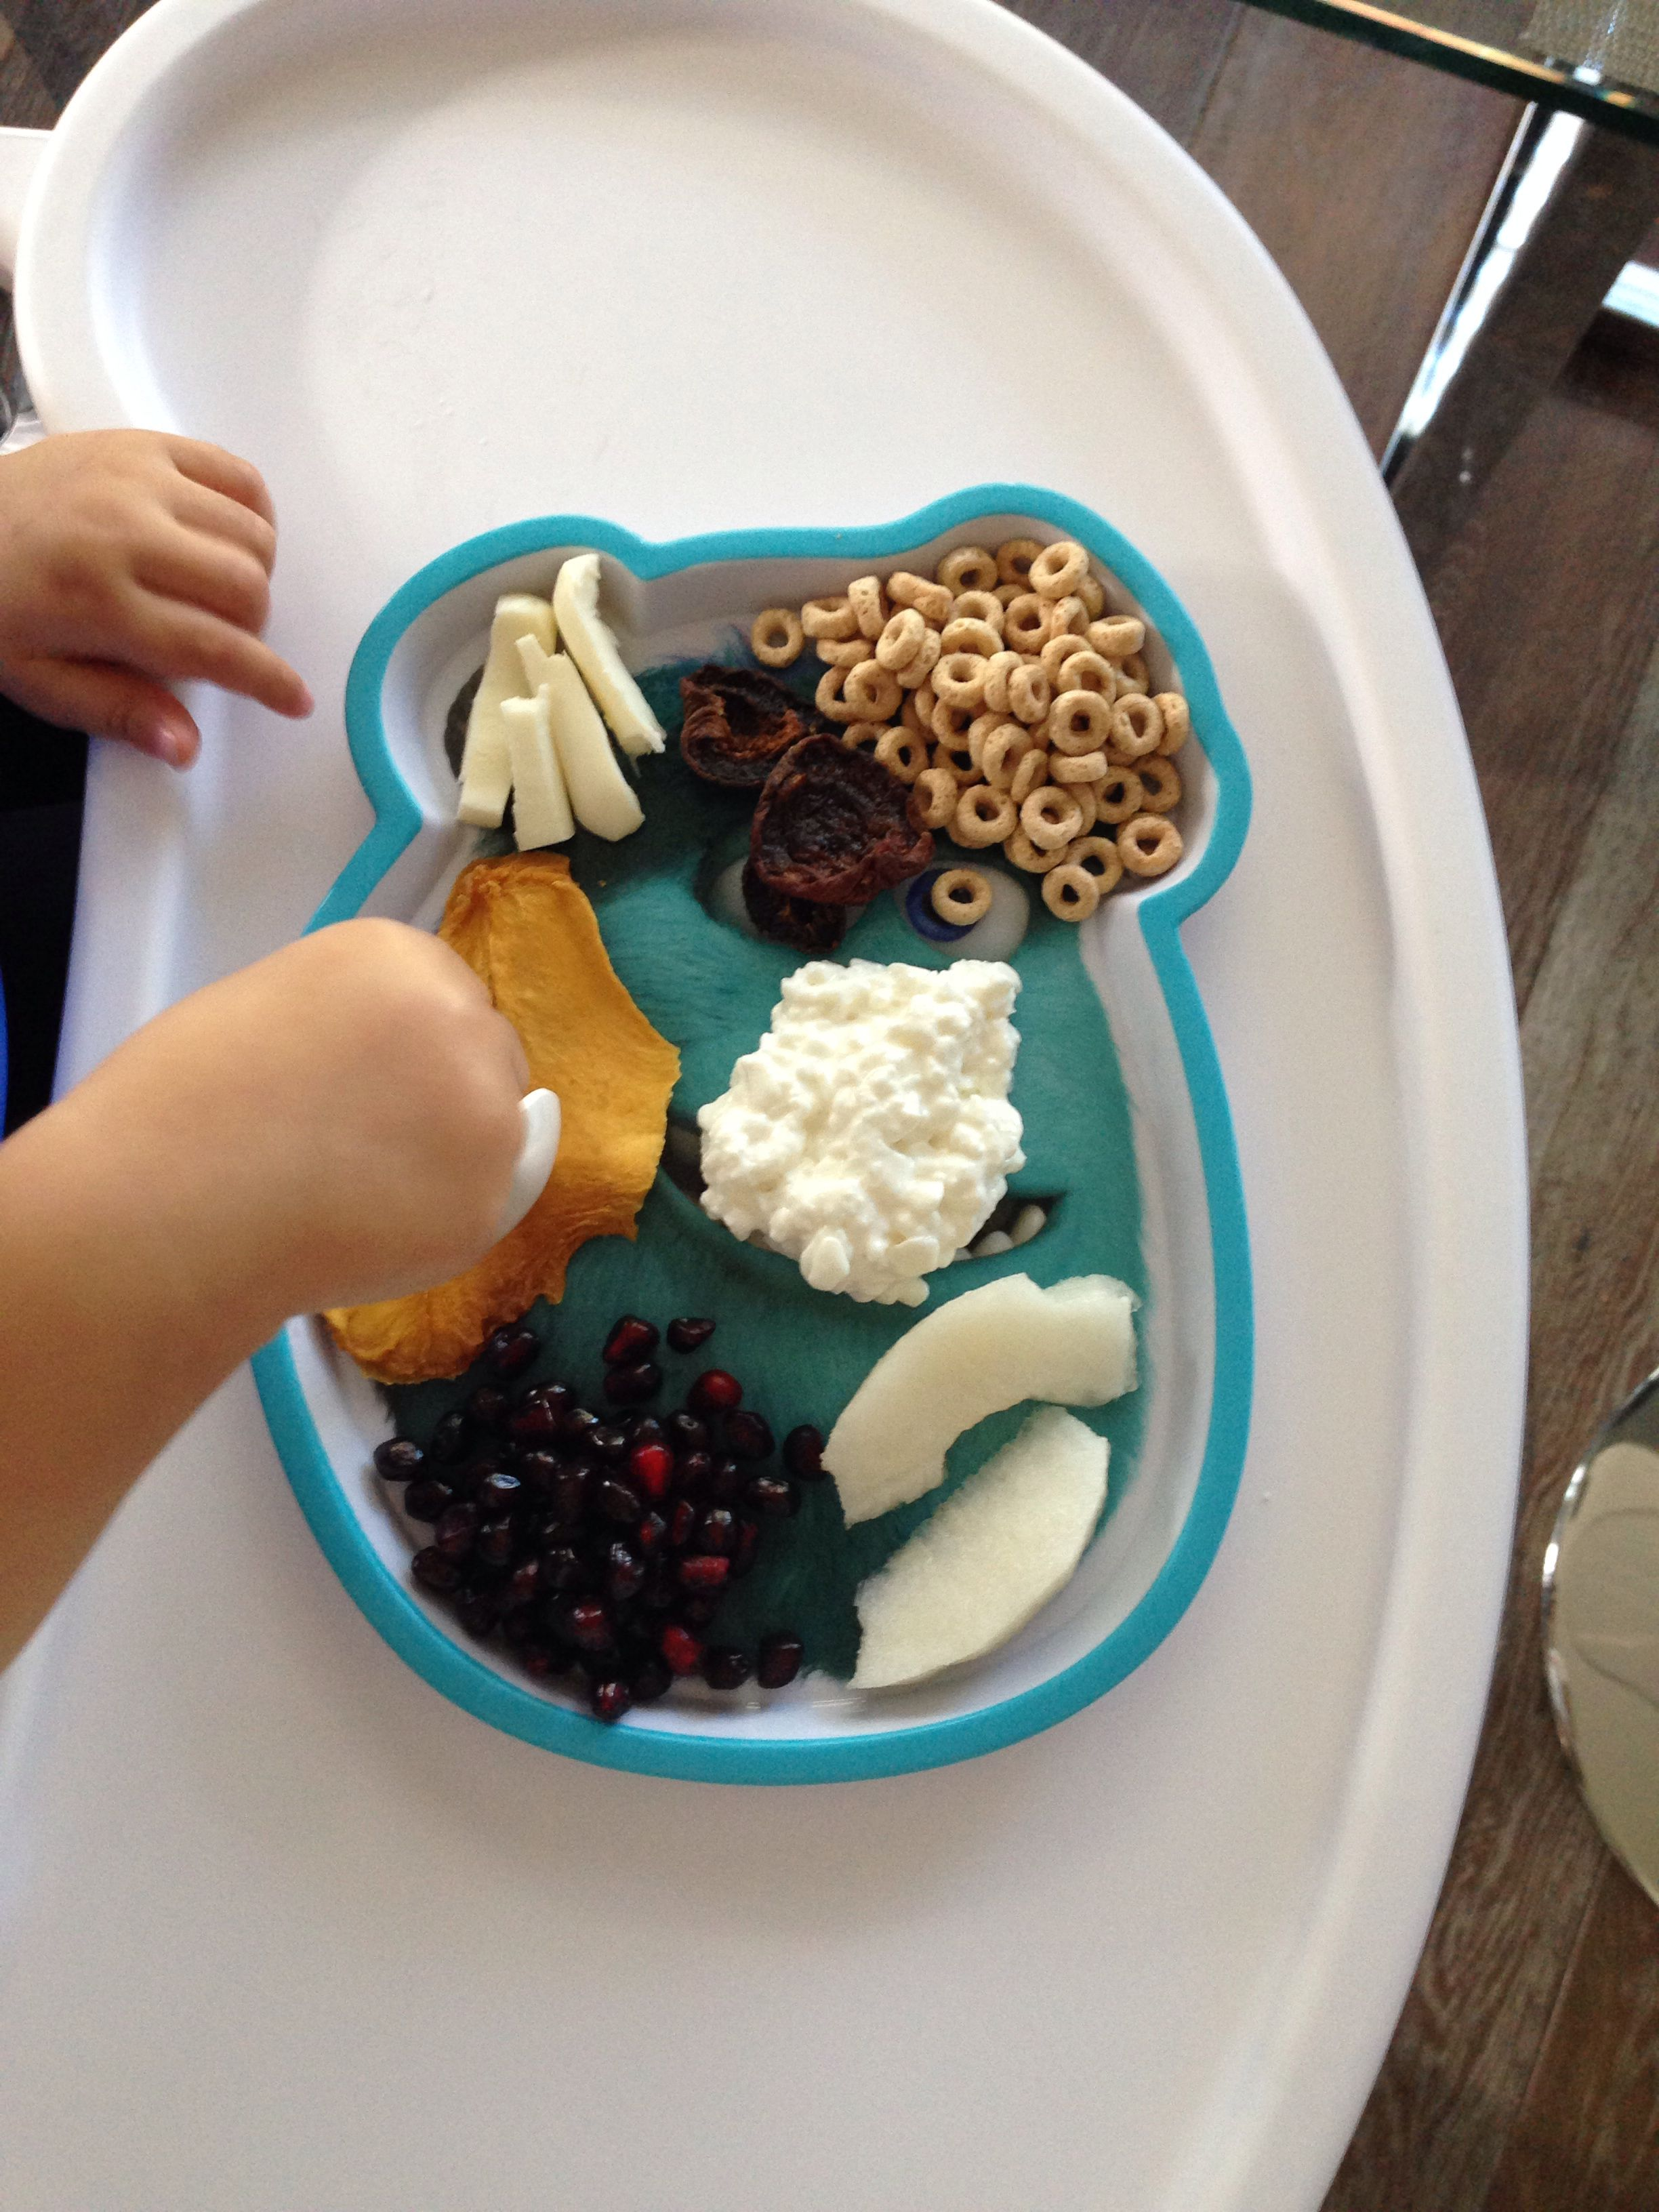 Breakfast @ 16 month old: organic dried mango, mozzarella stick, organic dried apricot, organic wholewheat cereal, organic whole cottage cheese, pears, home-grown pomegranate seeds